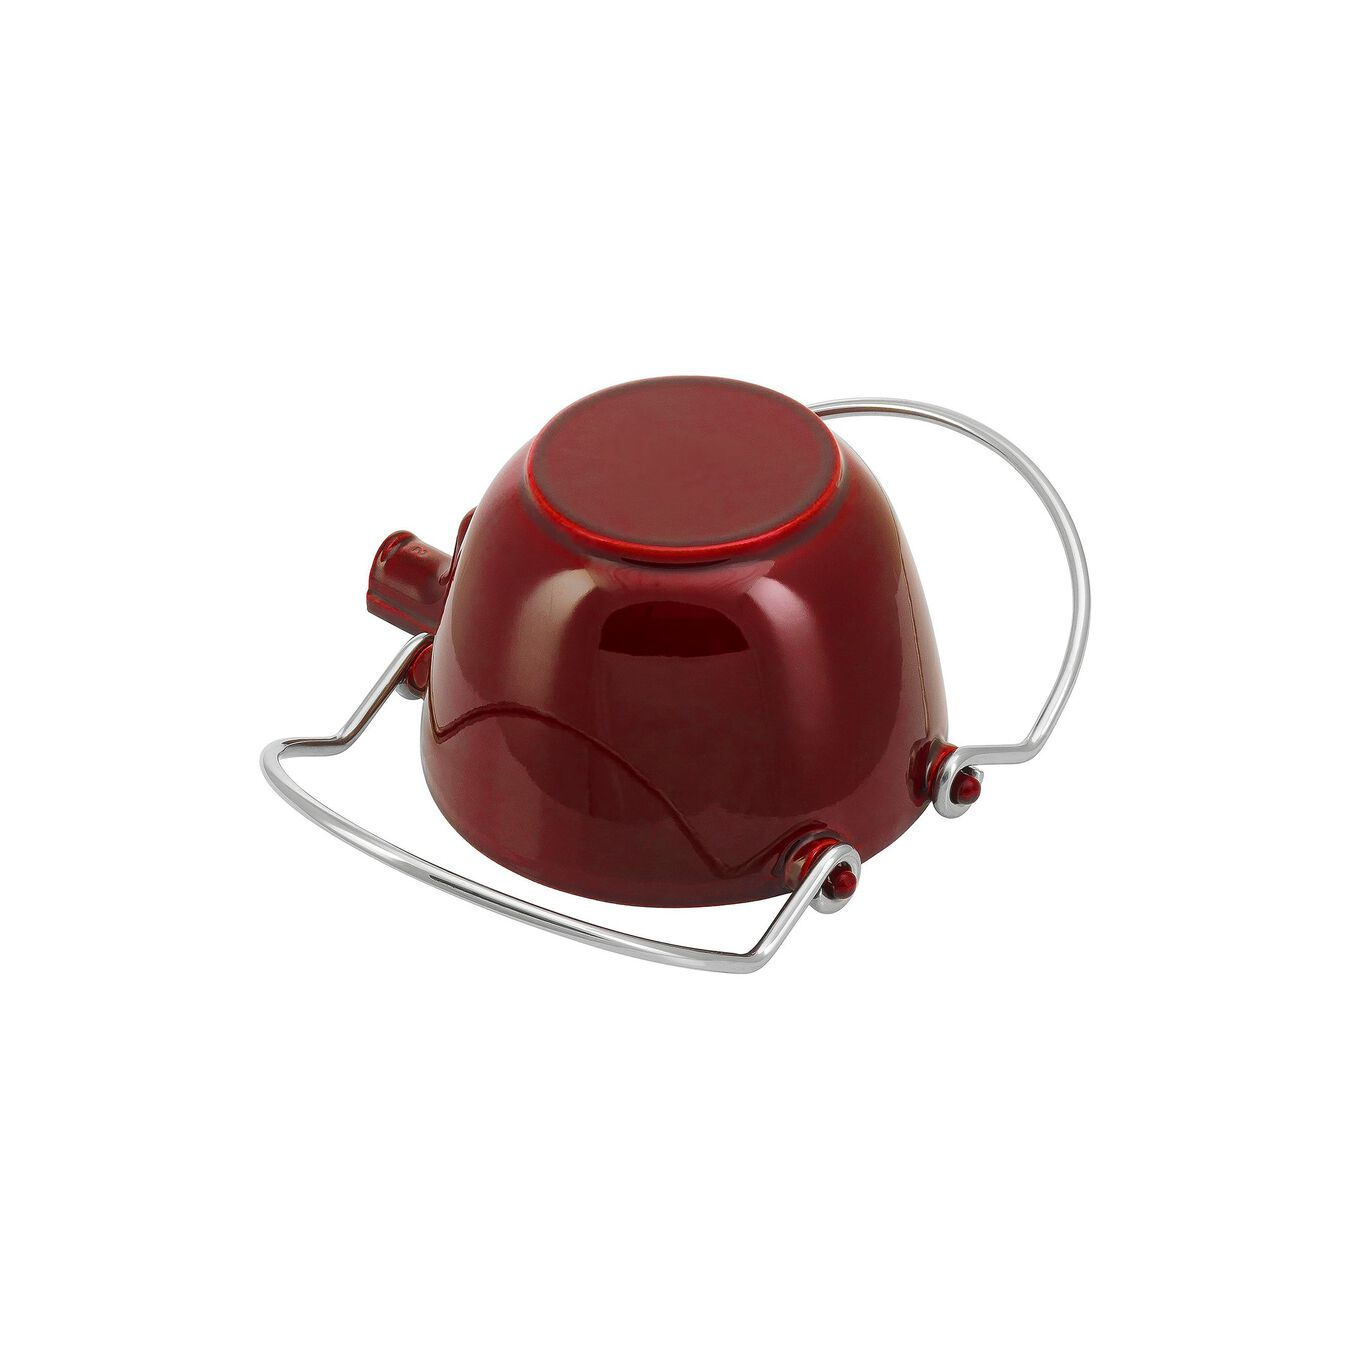 1-qt Round Tea Kettle - Grenadine,,large 6